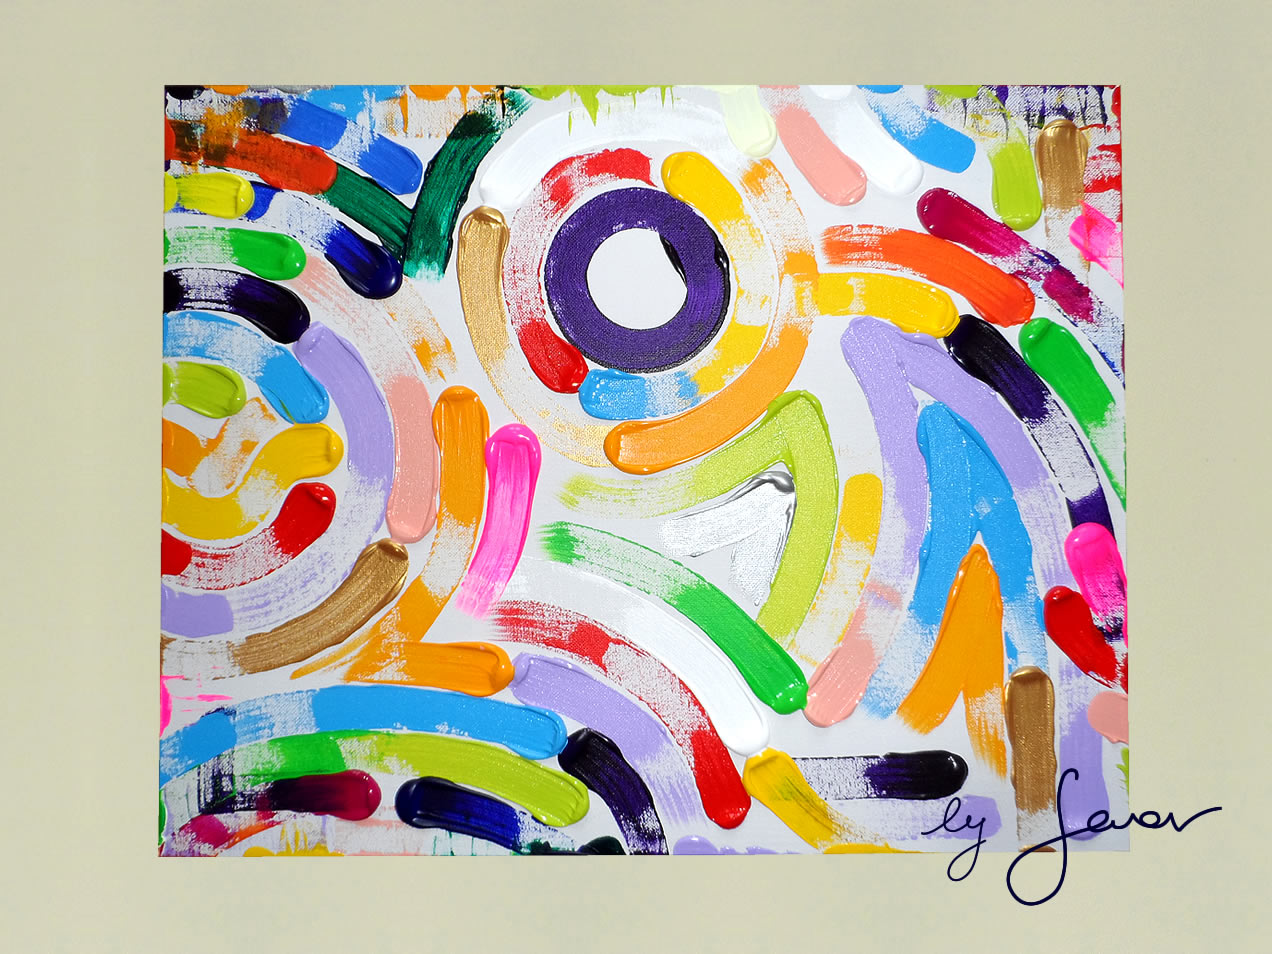 Day of Fun, Painting no. 46 by Swav